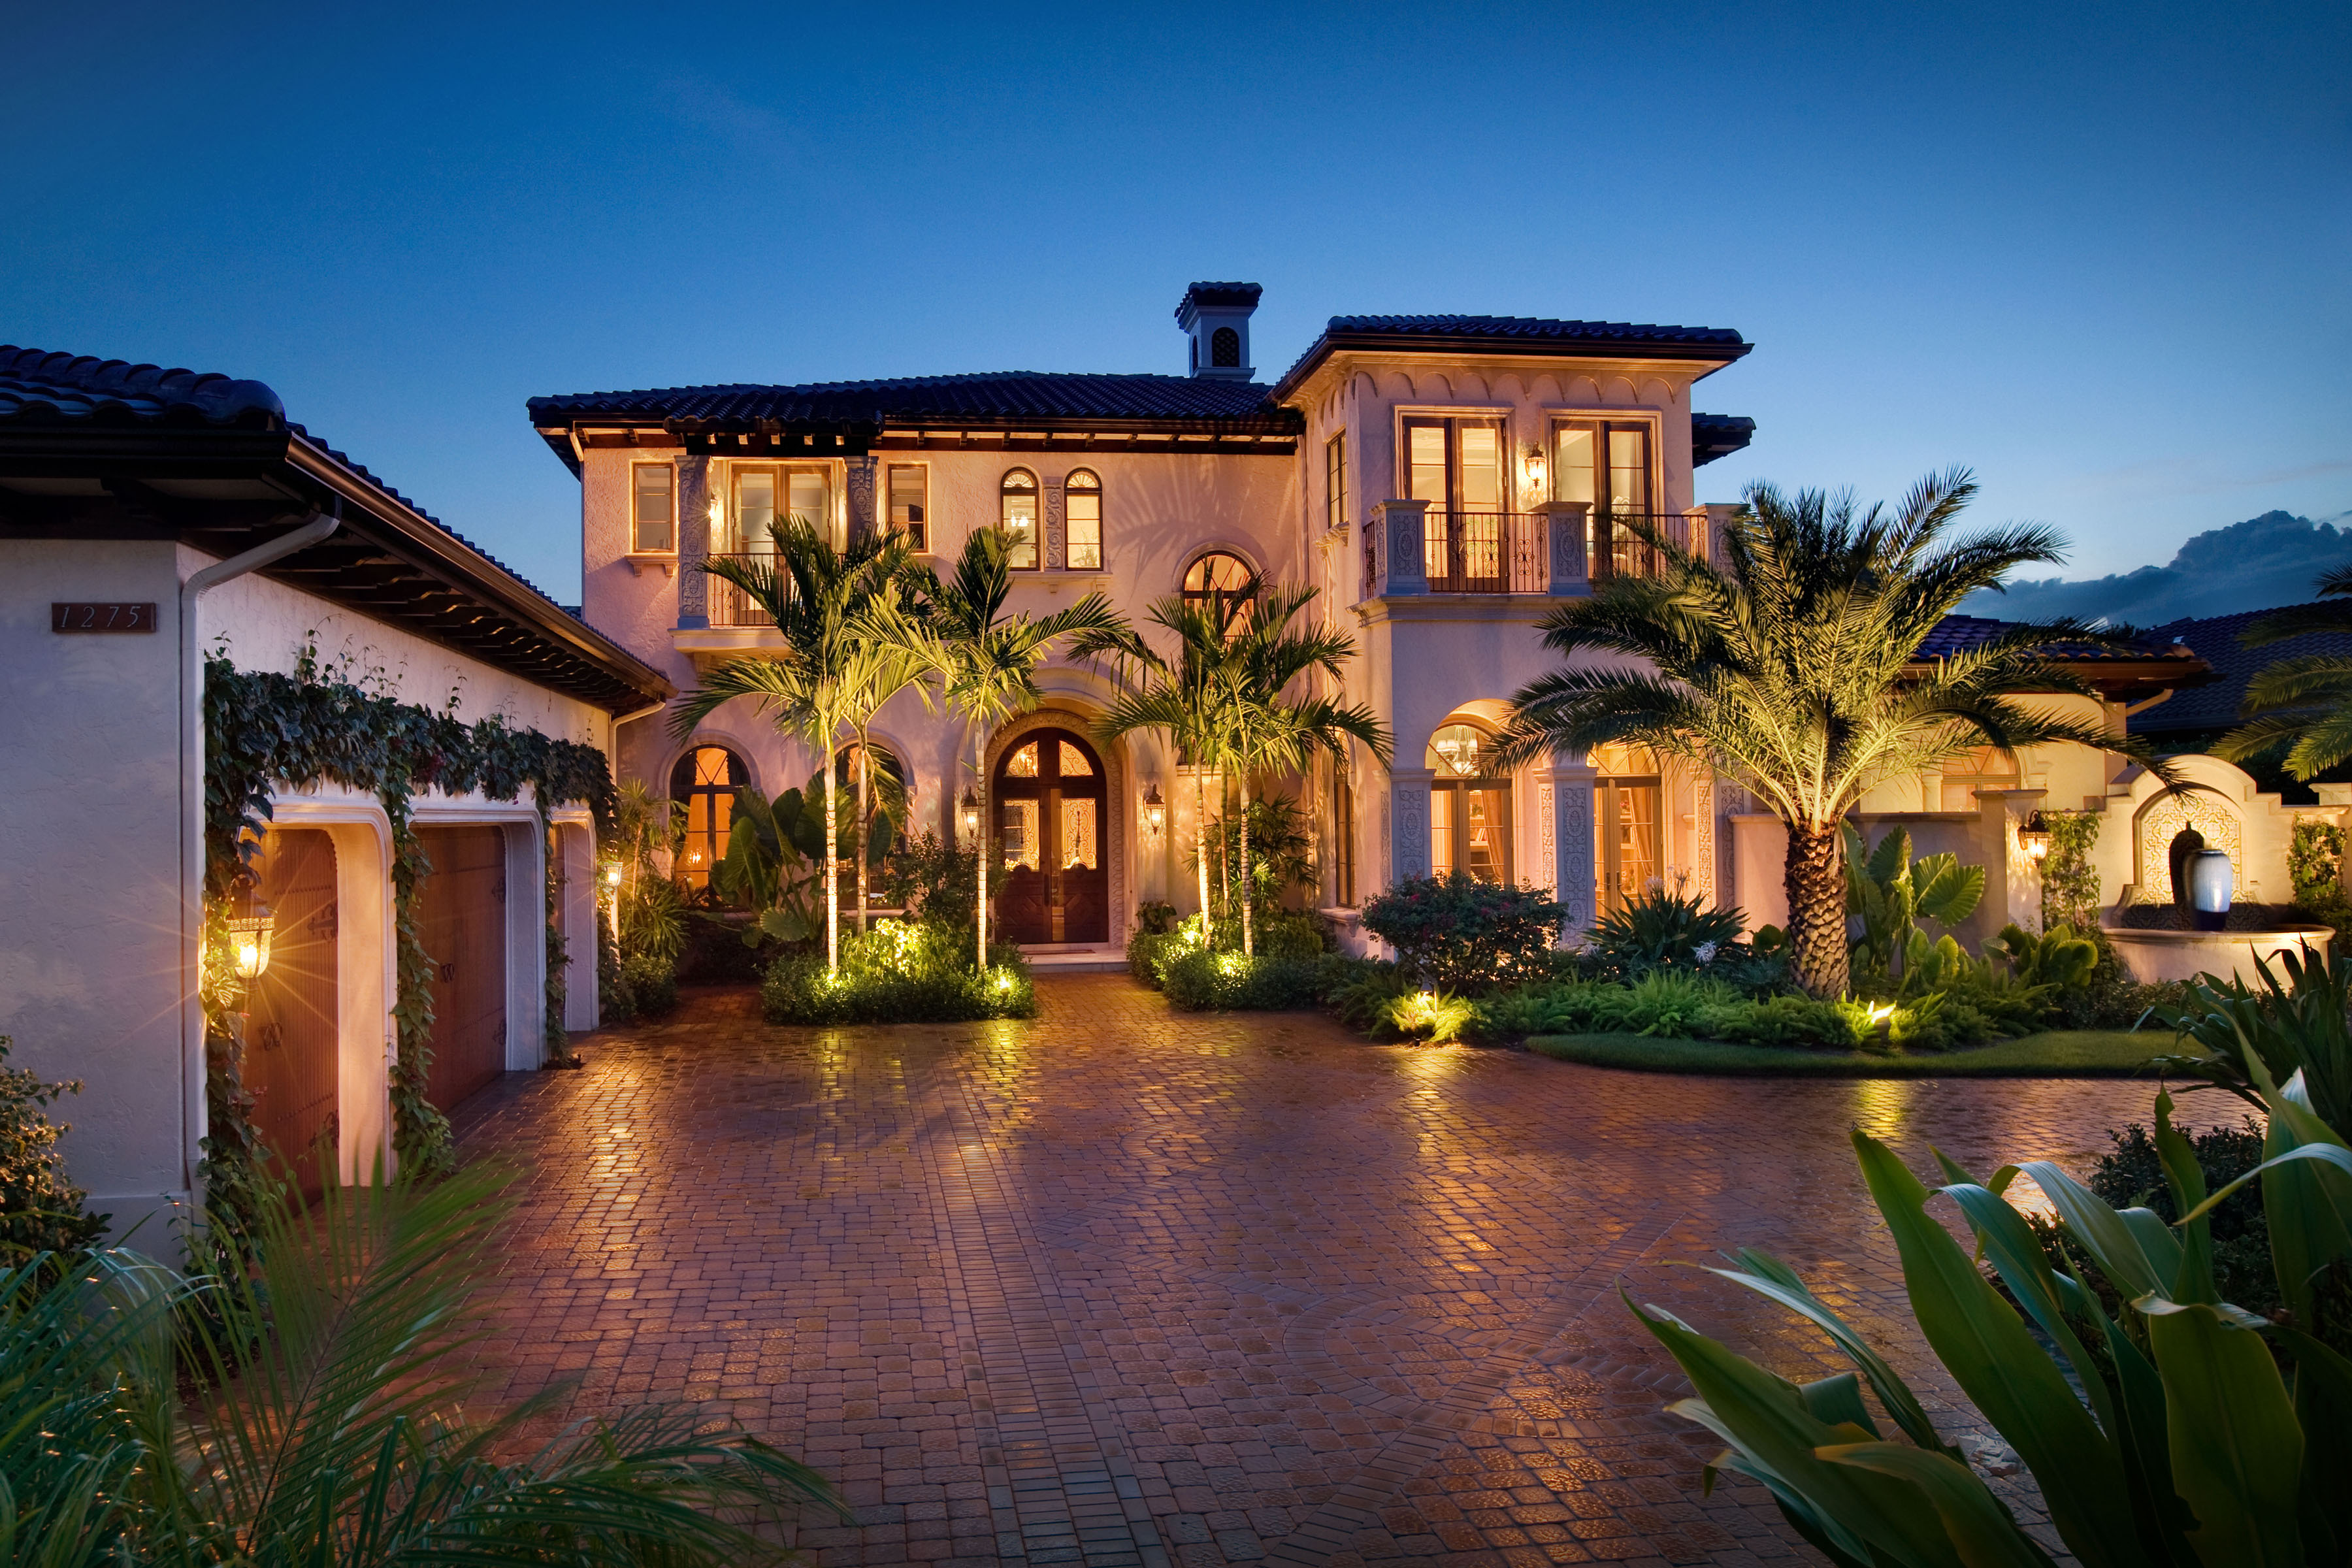 Wall street journal tees up most popular homes naples for Luxury house